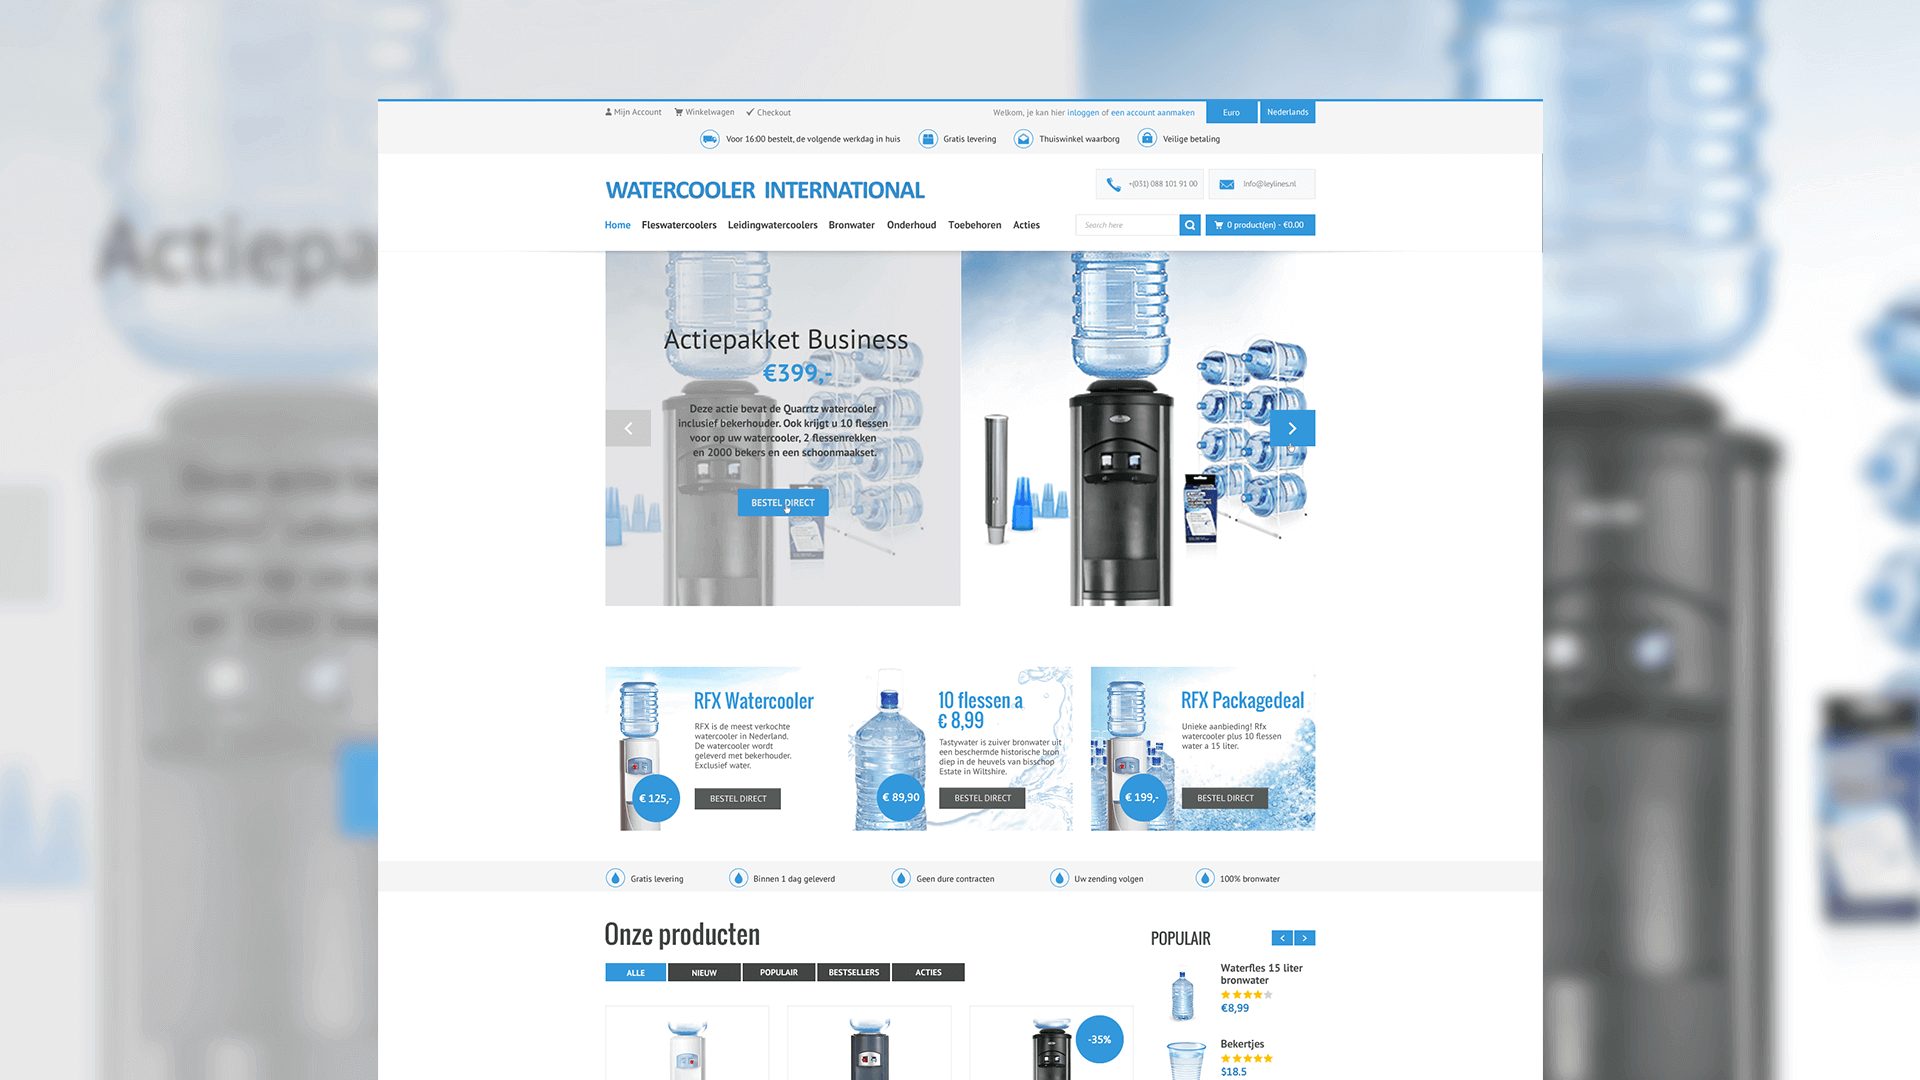 Watercooler International webshop portfolio item